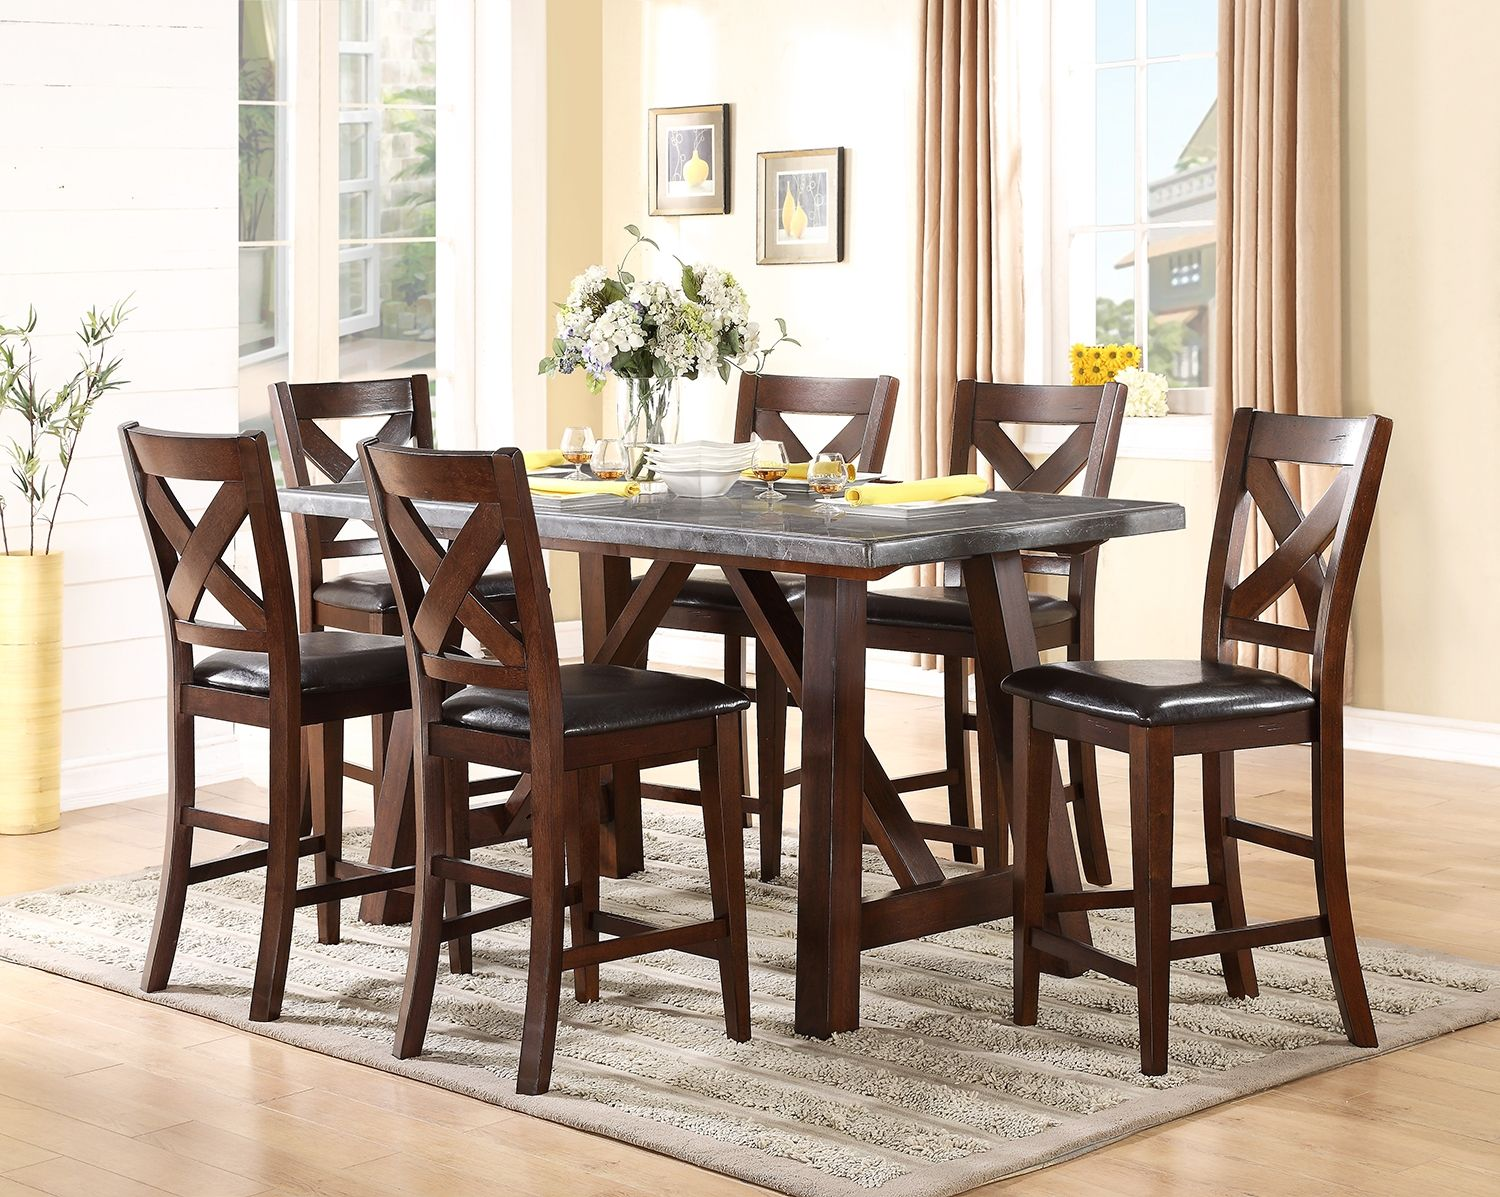 Adara counter height dining chair dining chairs accent pieces and adara counter height dining chair dzzzfo